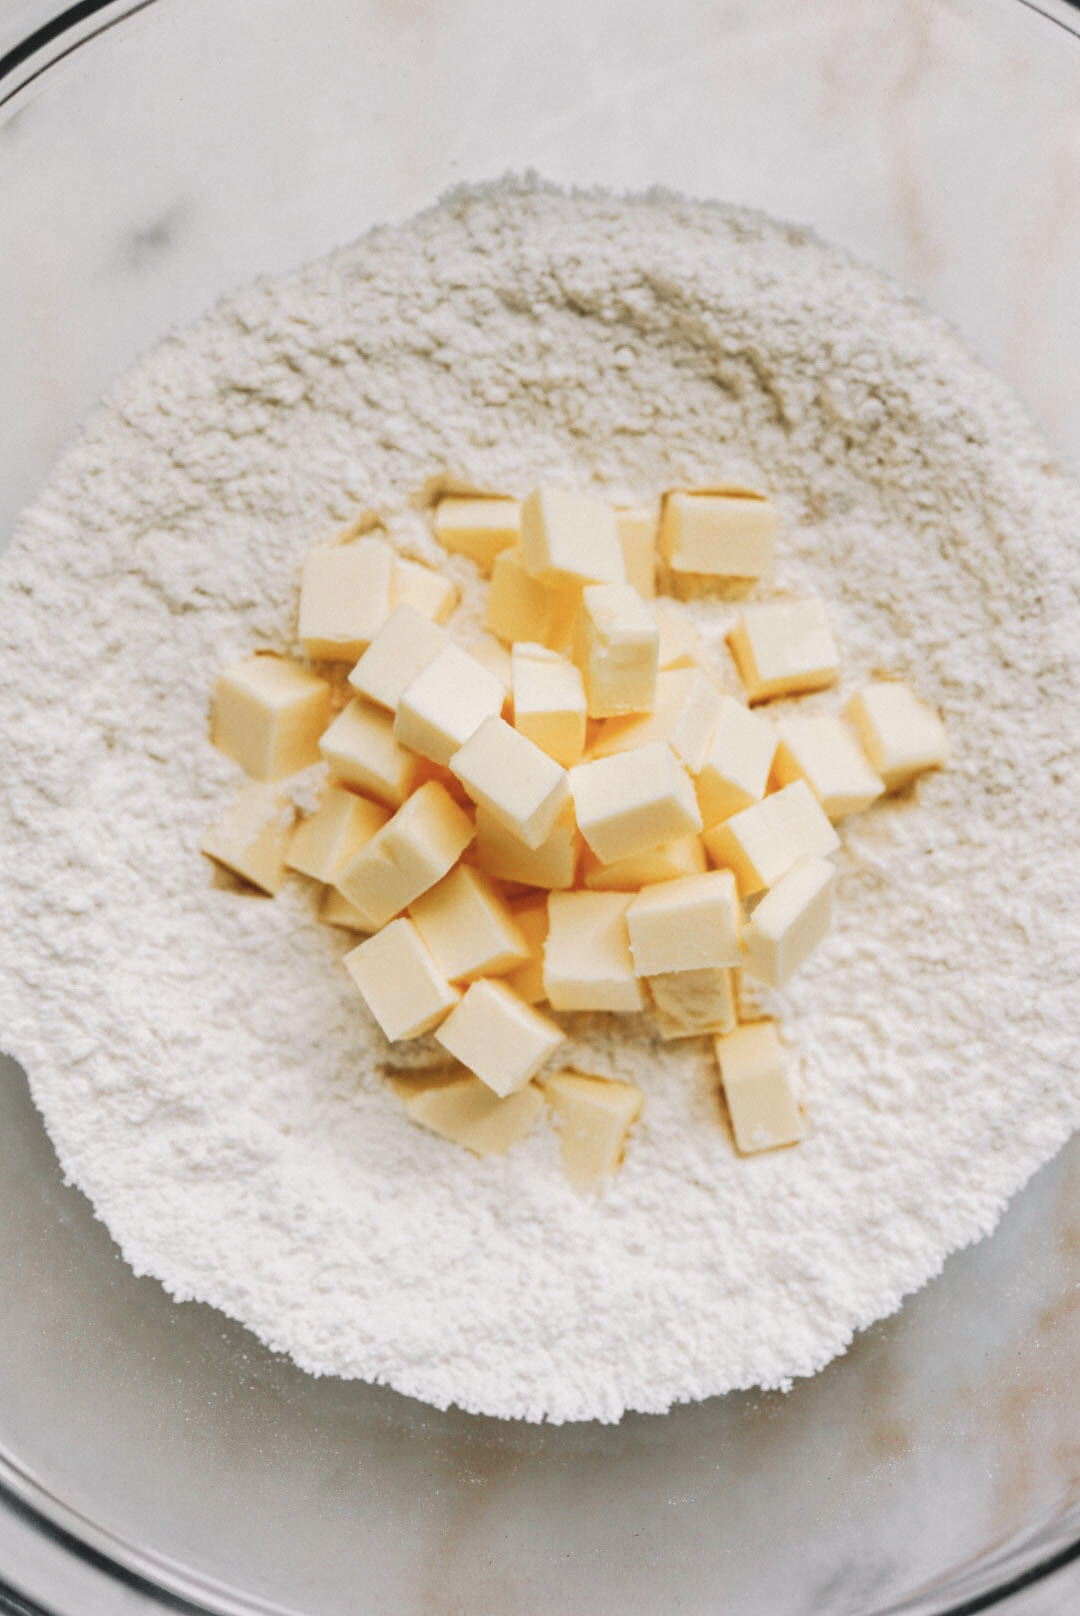 cubed butter on flour in glass bowl